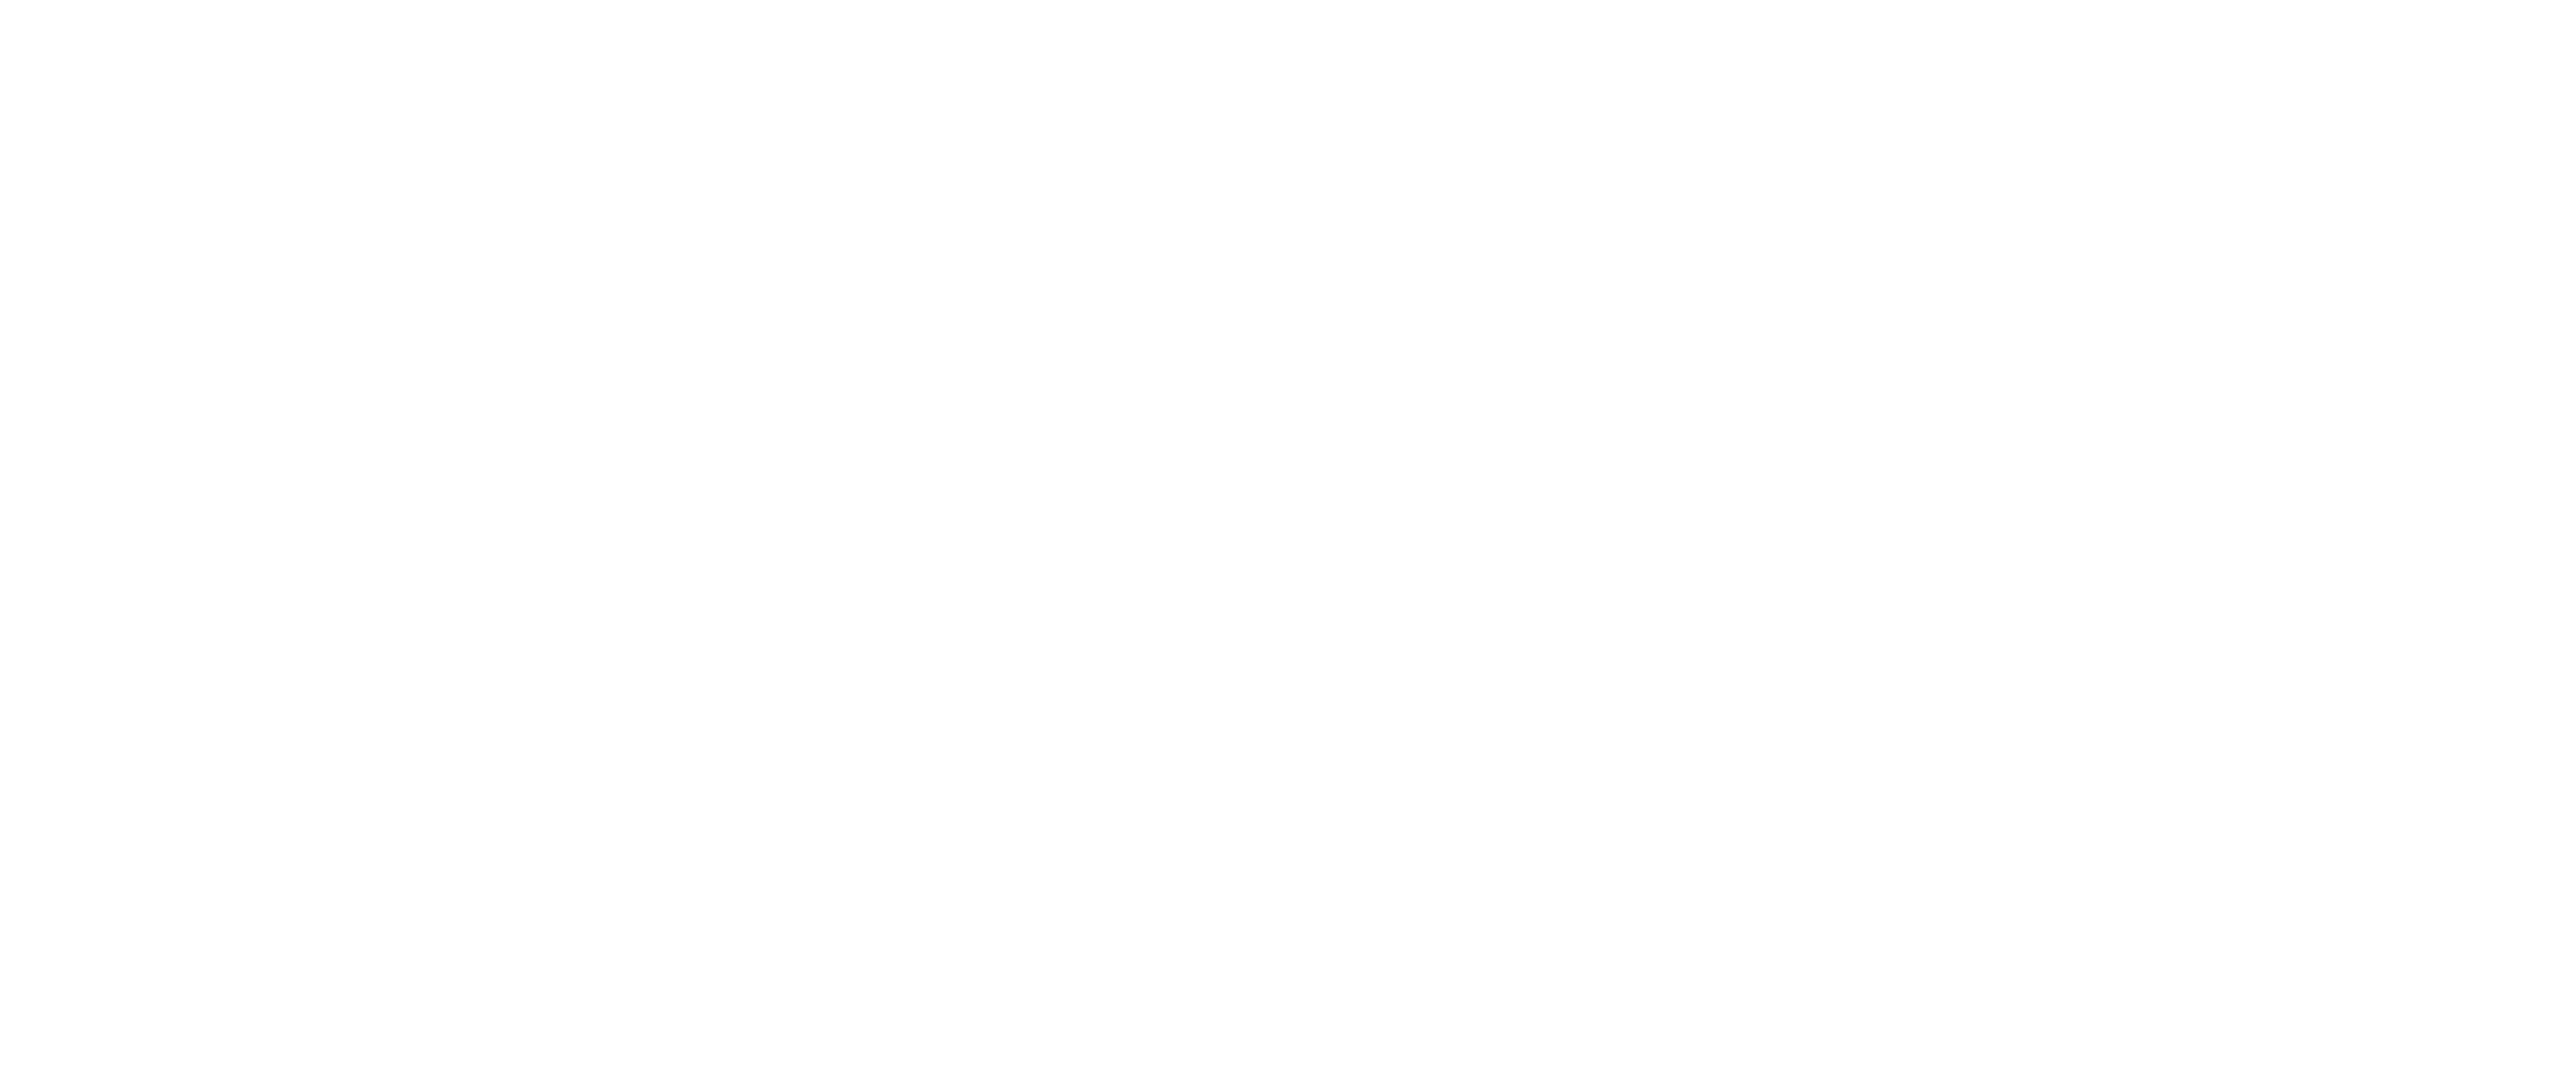 coopparty-disability-white@4x (2)